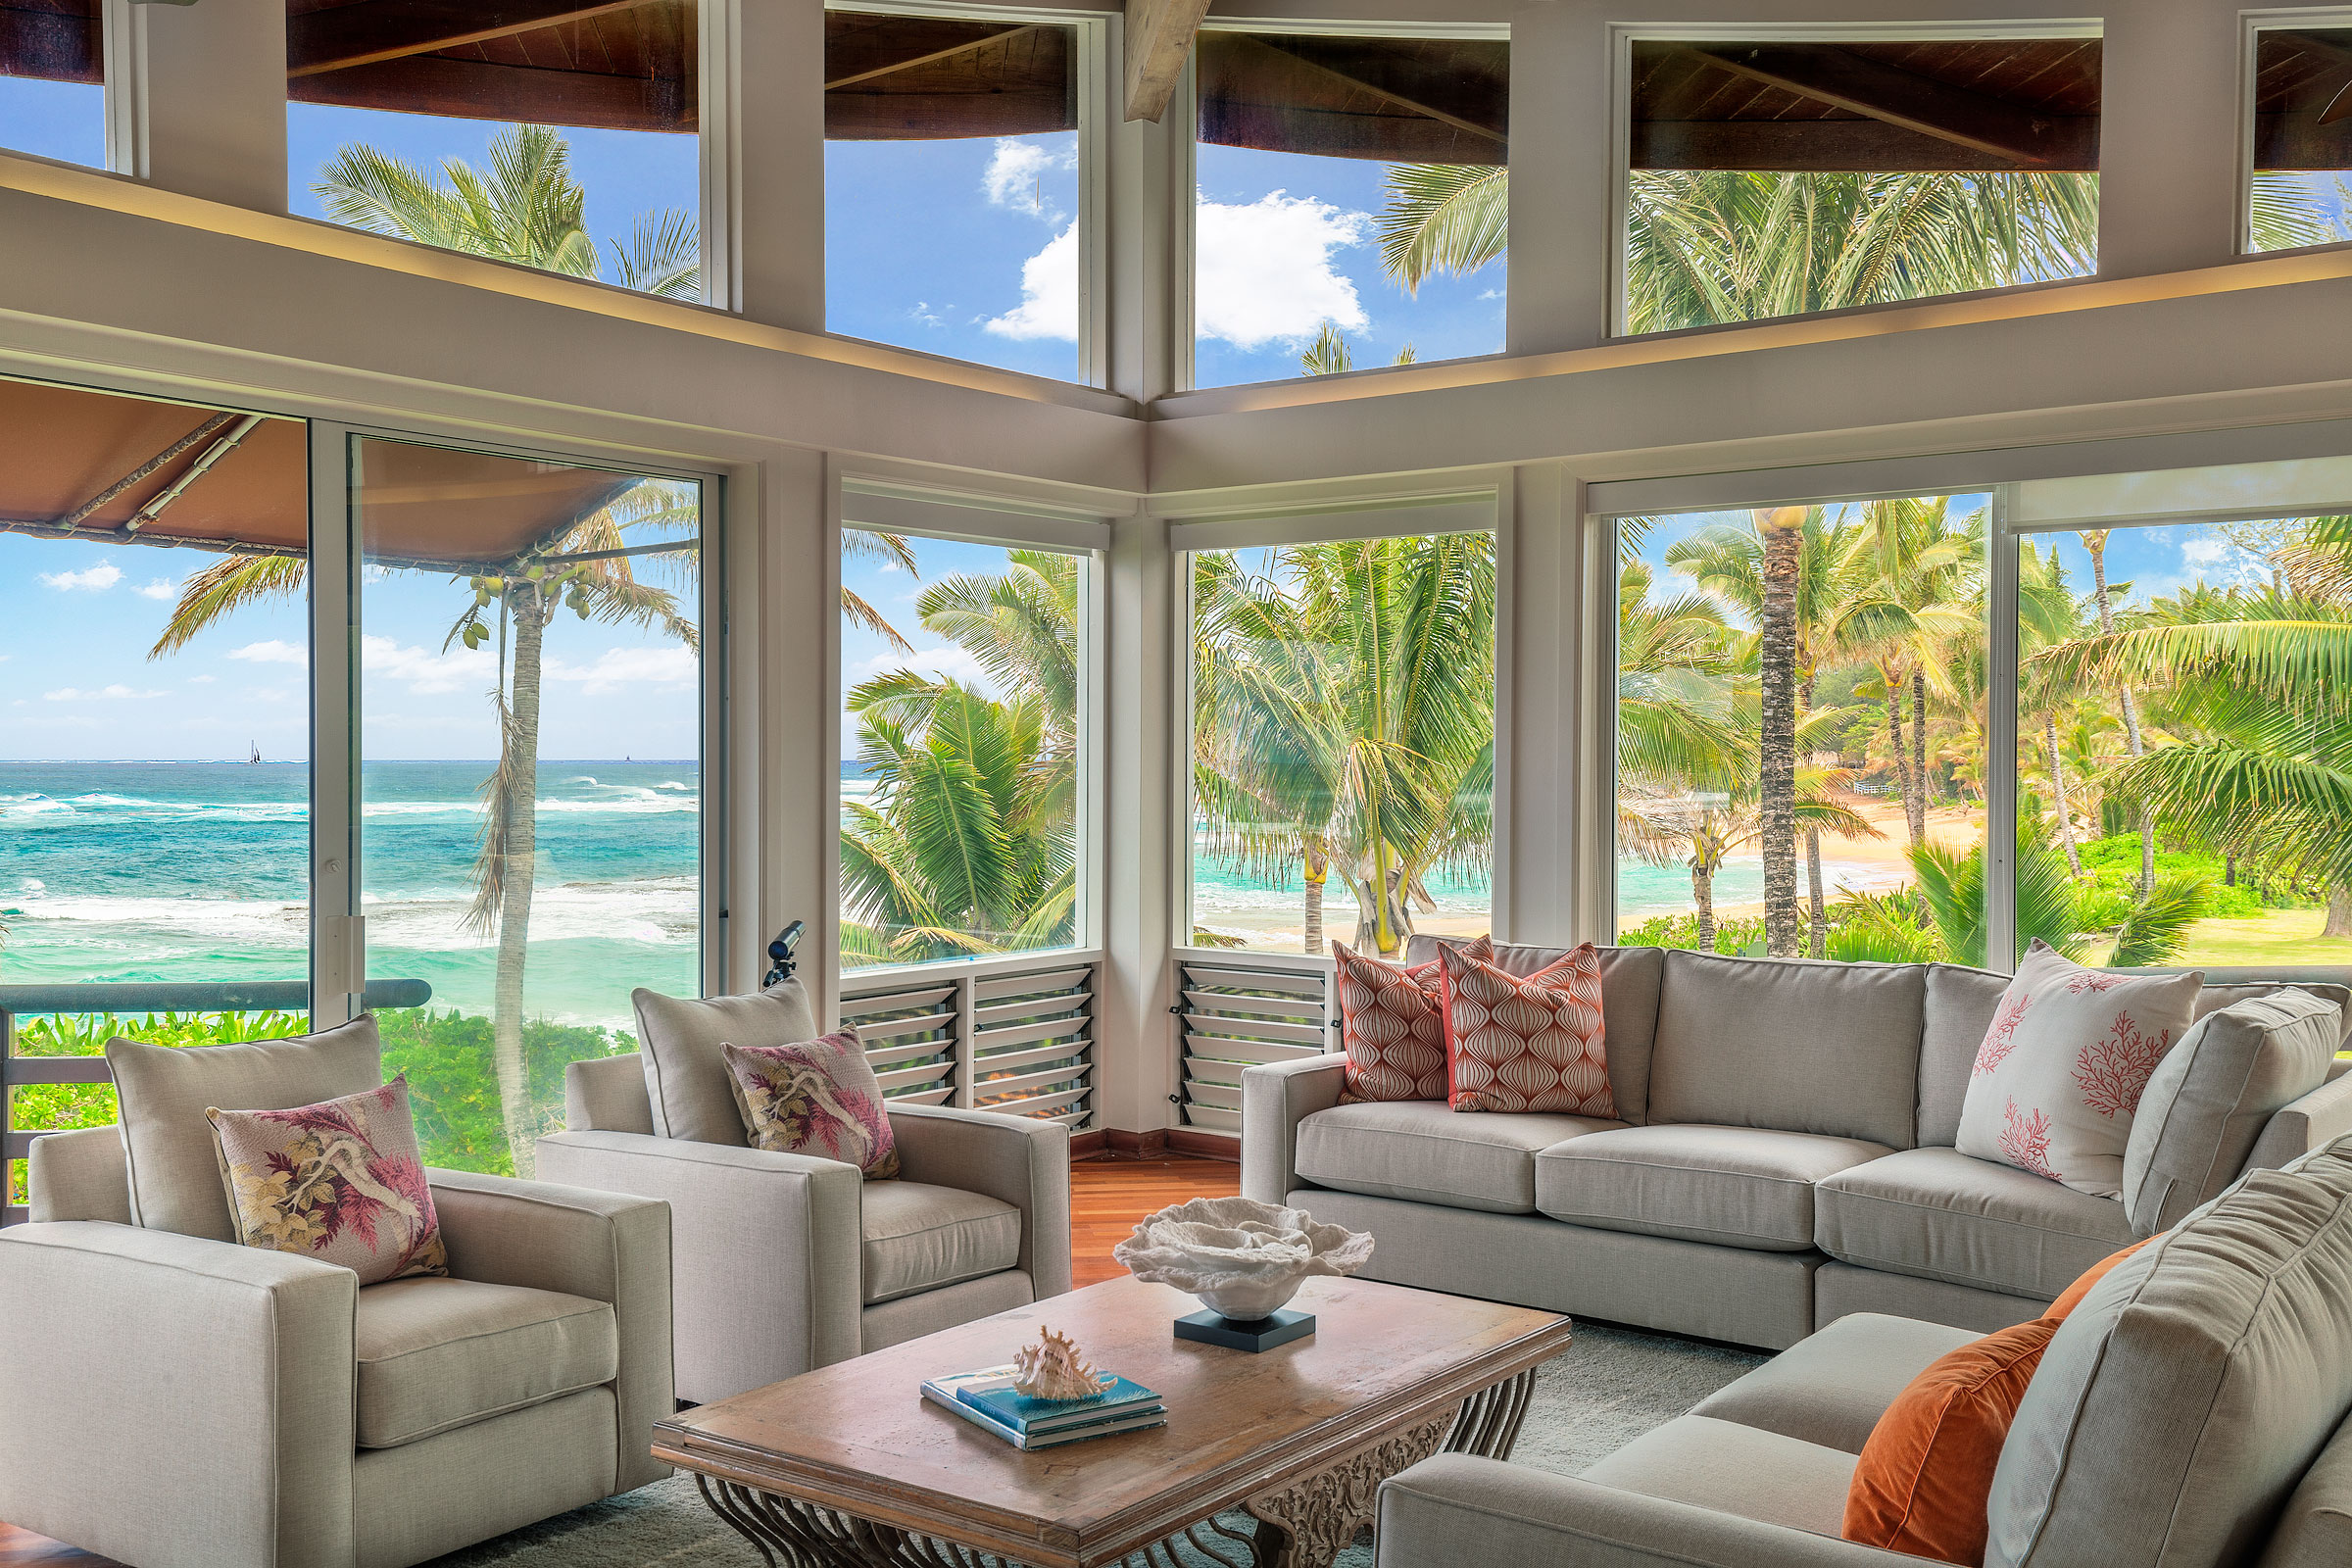 Kauai Luxury Home | Hawaii Real Estate Photographer | PanaViz